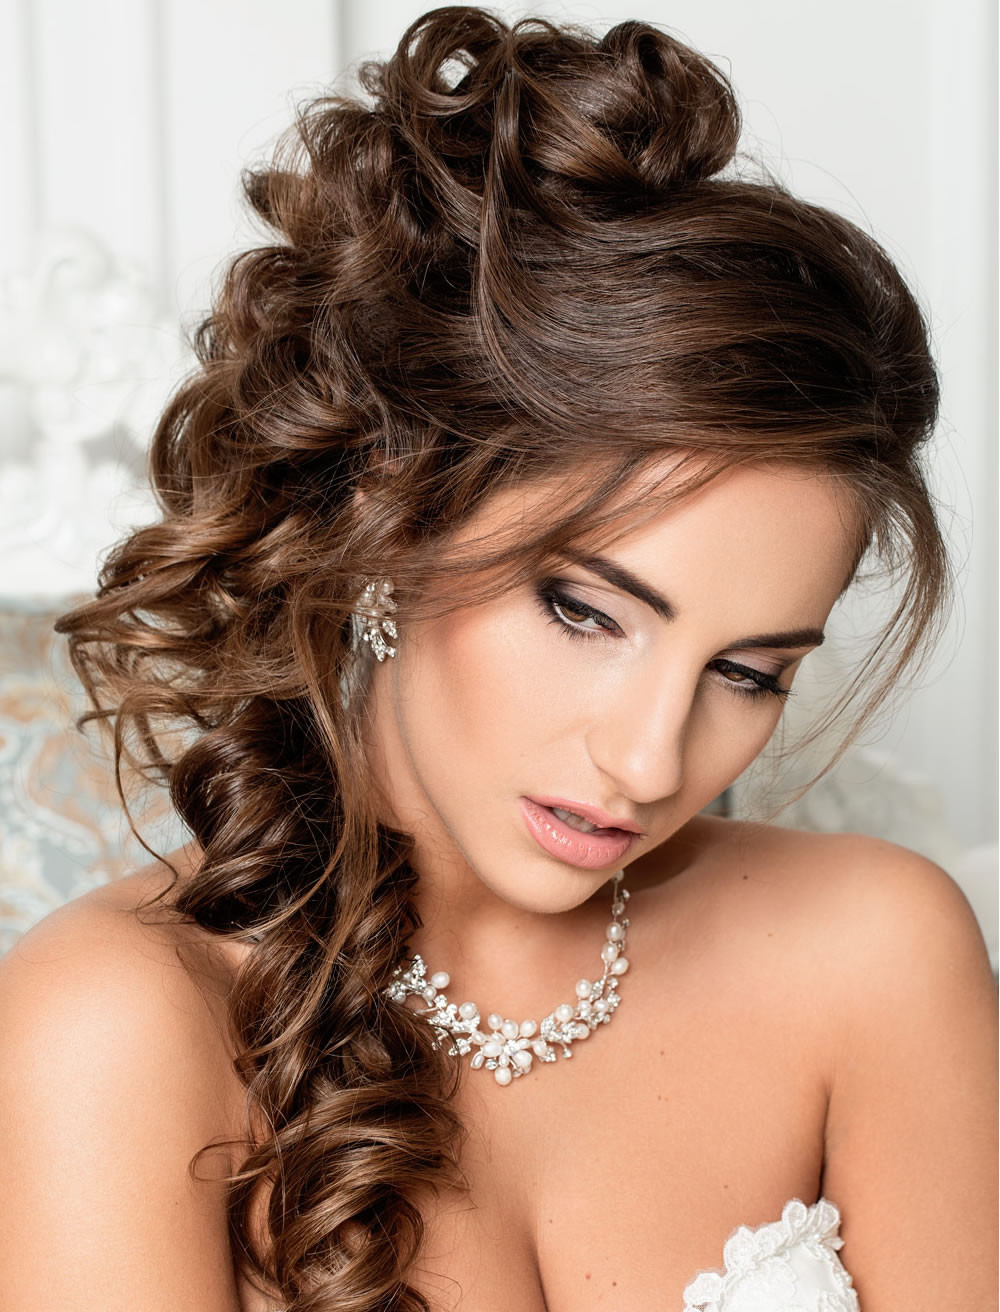 2019 Prom Hairstyles  Very Stylish Wedding Hairstyles for Long Hair 2018 2019